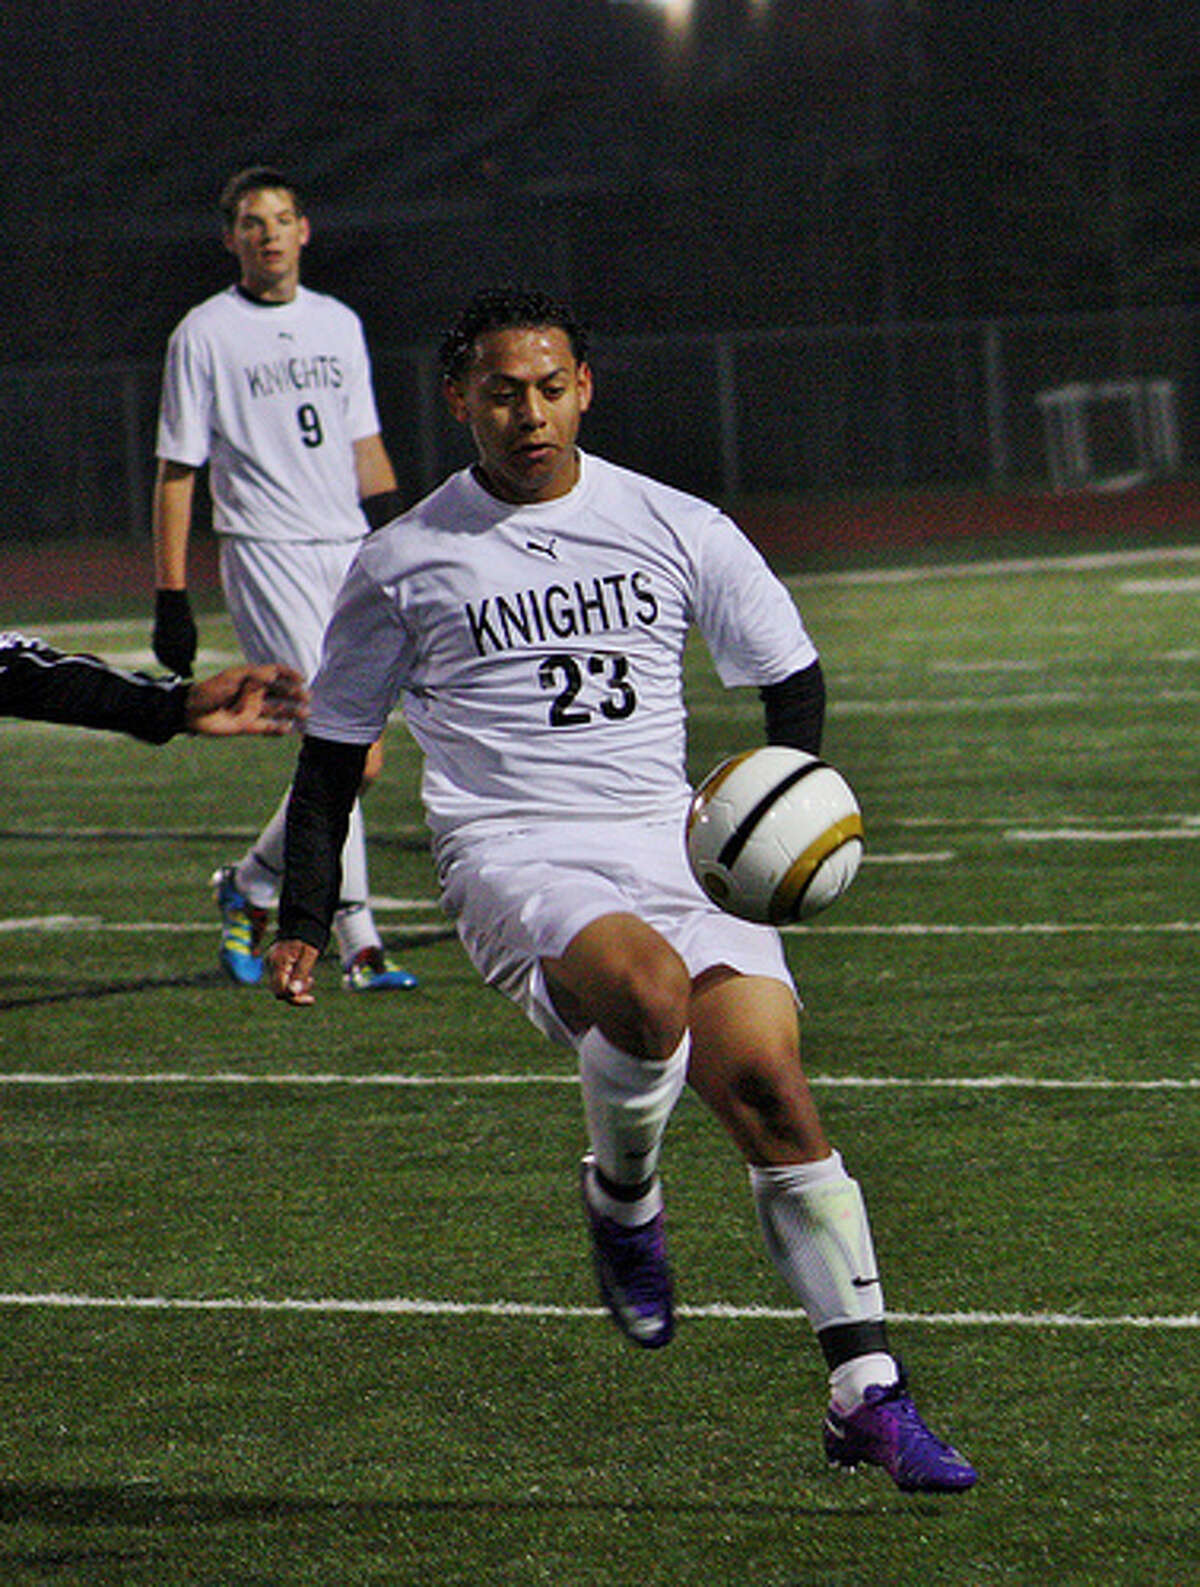 The Knights' Jonathan Medina (23) maintains possession of the ball late in Steele's Friday win over Seguin.